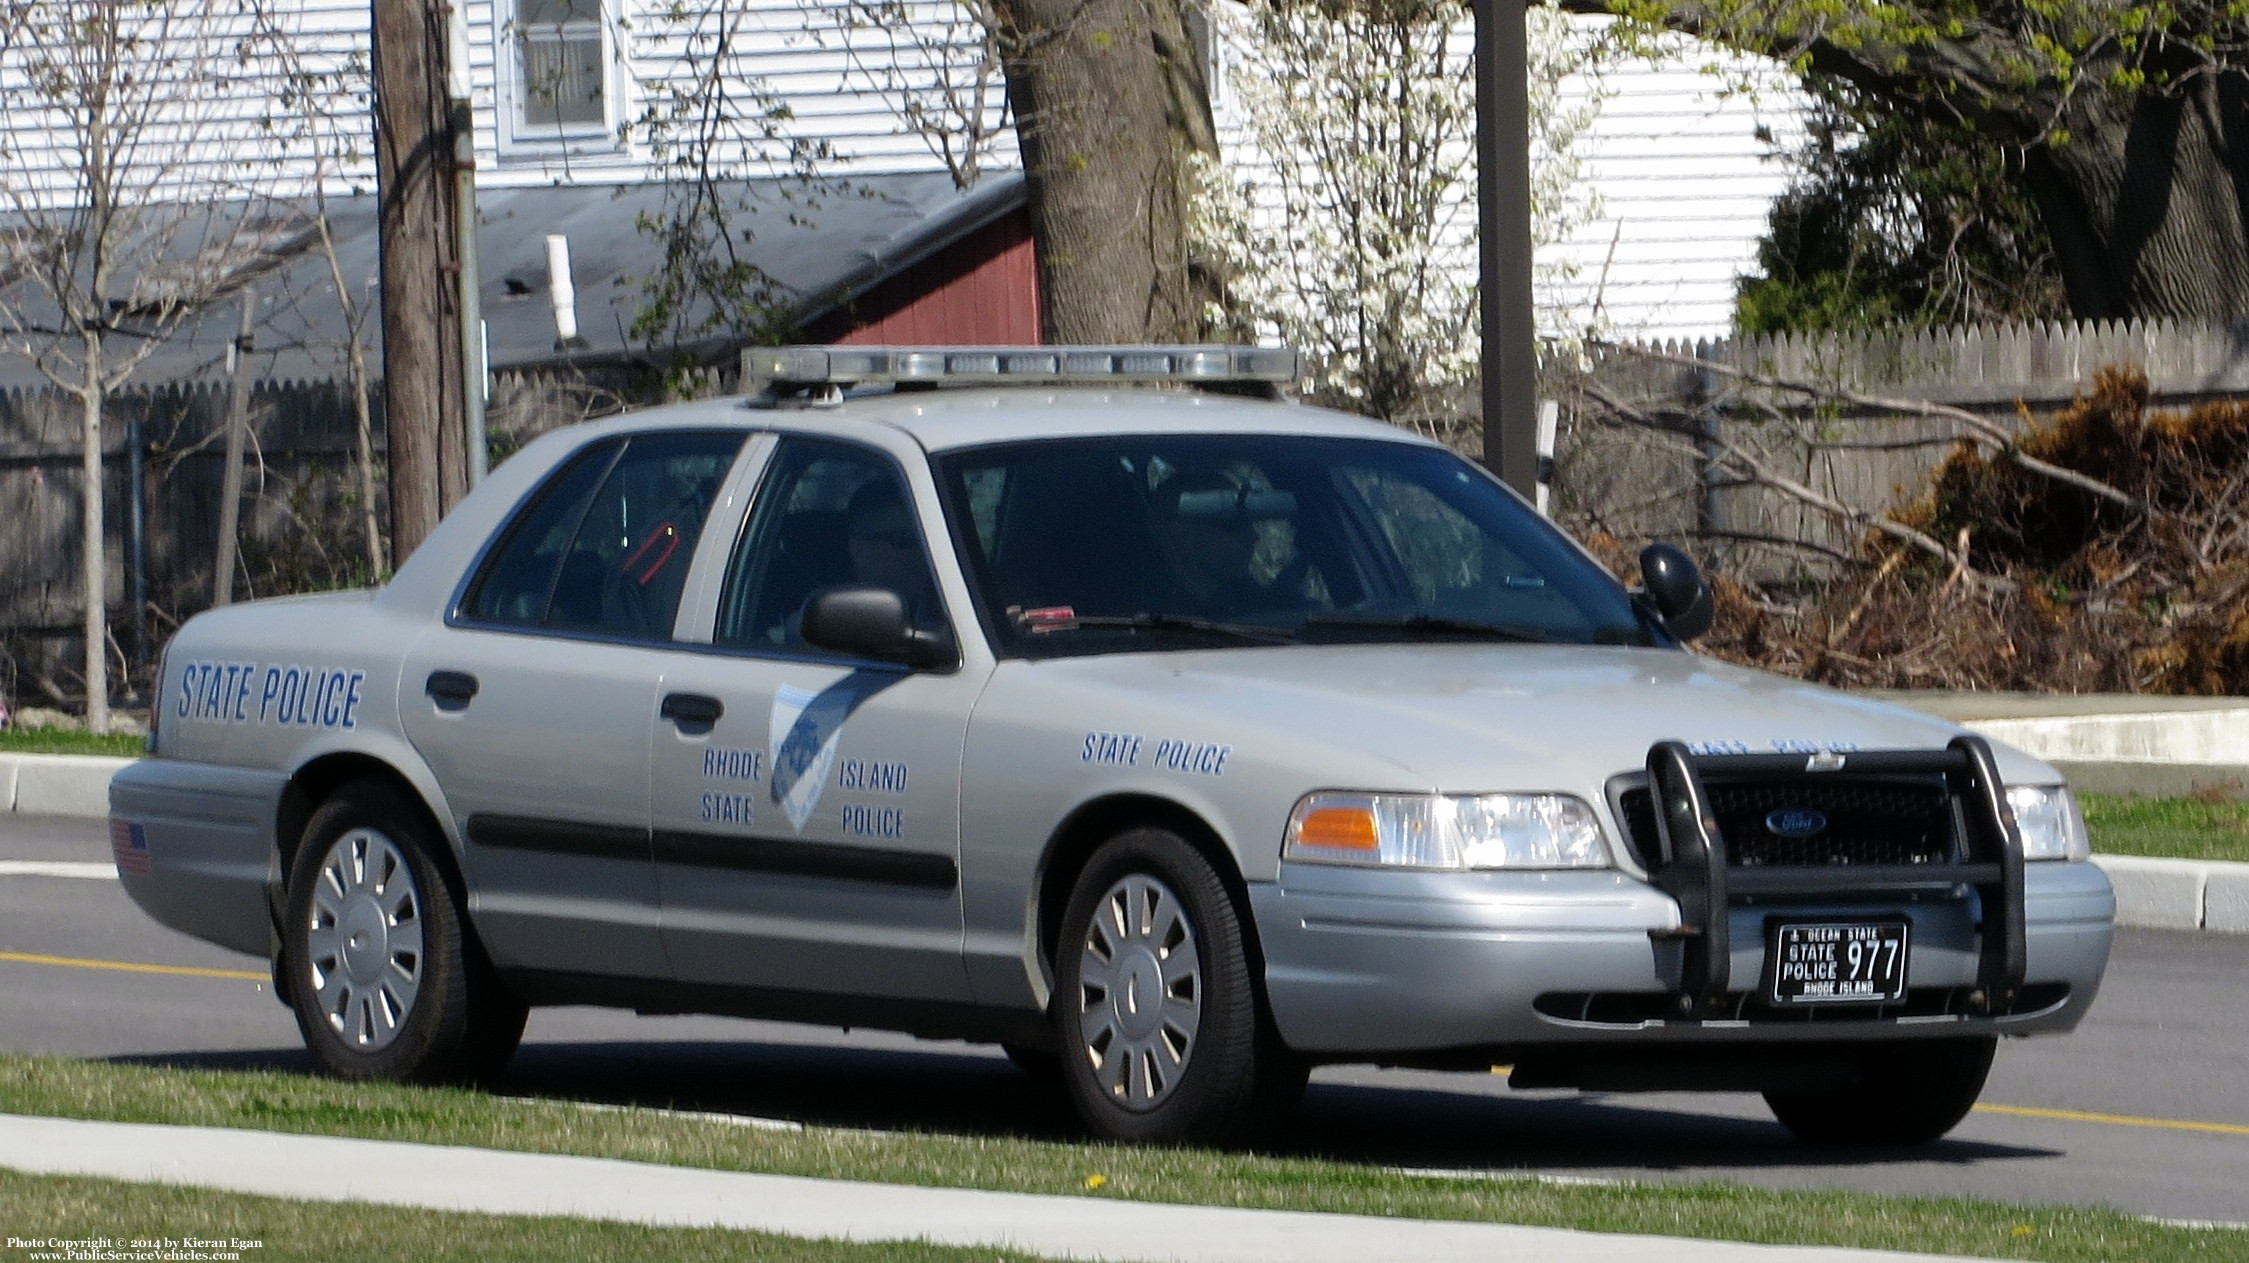 A photo  of Rhode Island State Police             Cruiser 977, a 2006-2008 Ford Crown Victoria Police Interceptor             taken by Kieran Egan